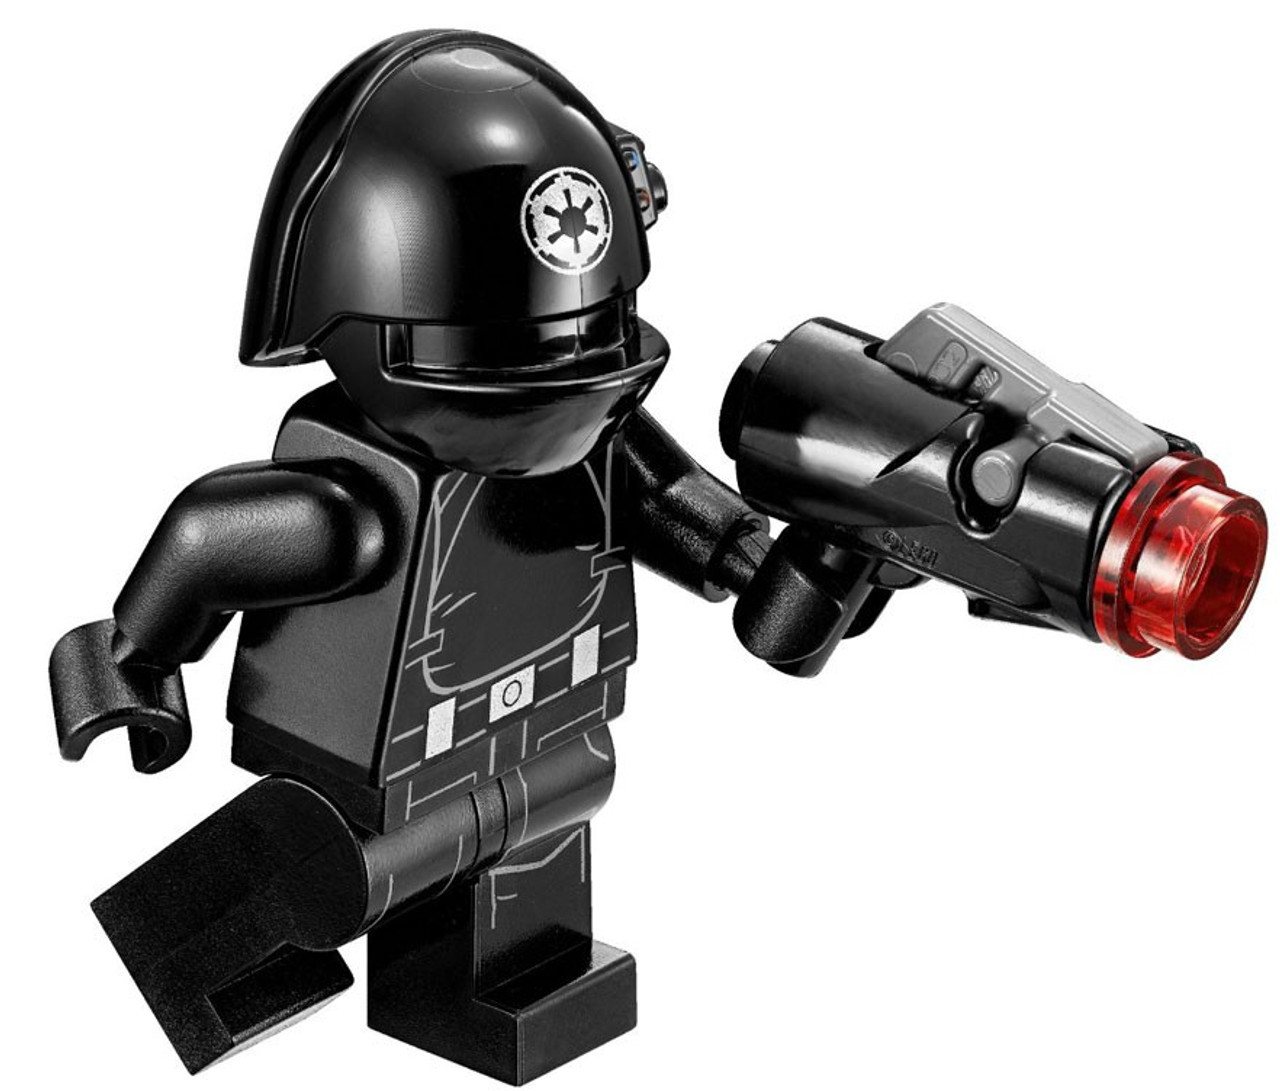 LEGO Star Wars Death Star Trooper Minifigure [Loose]